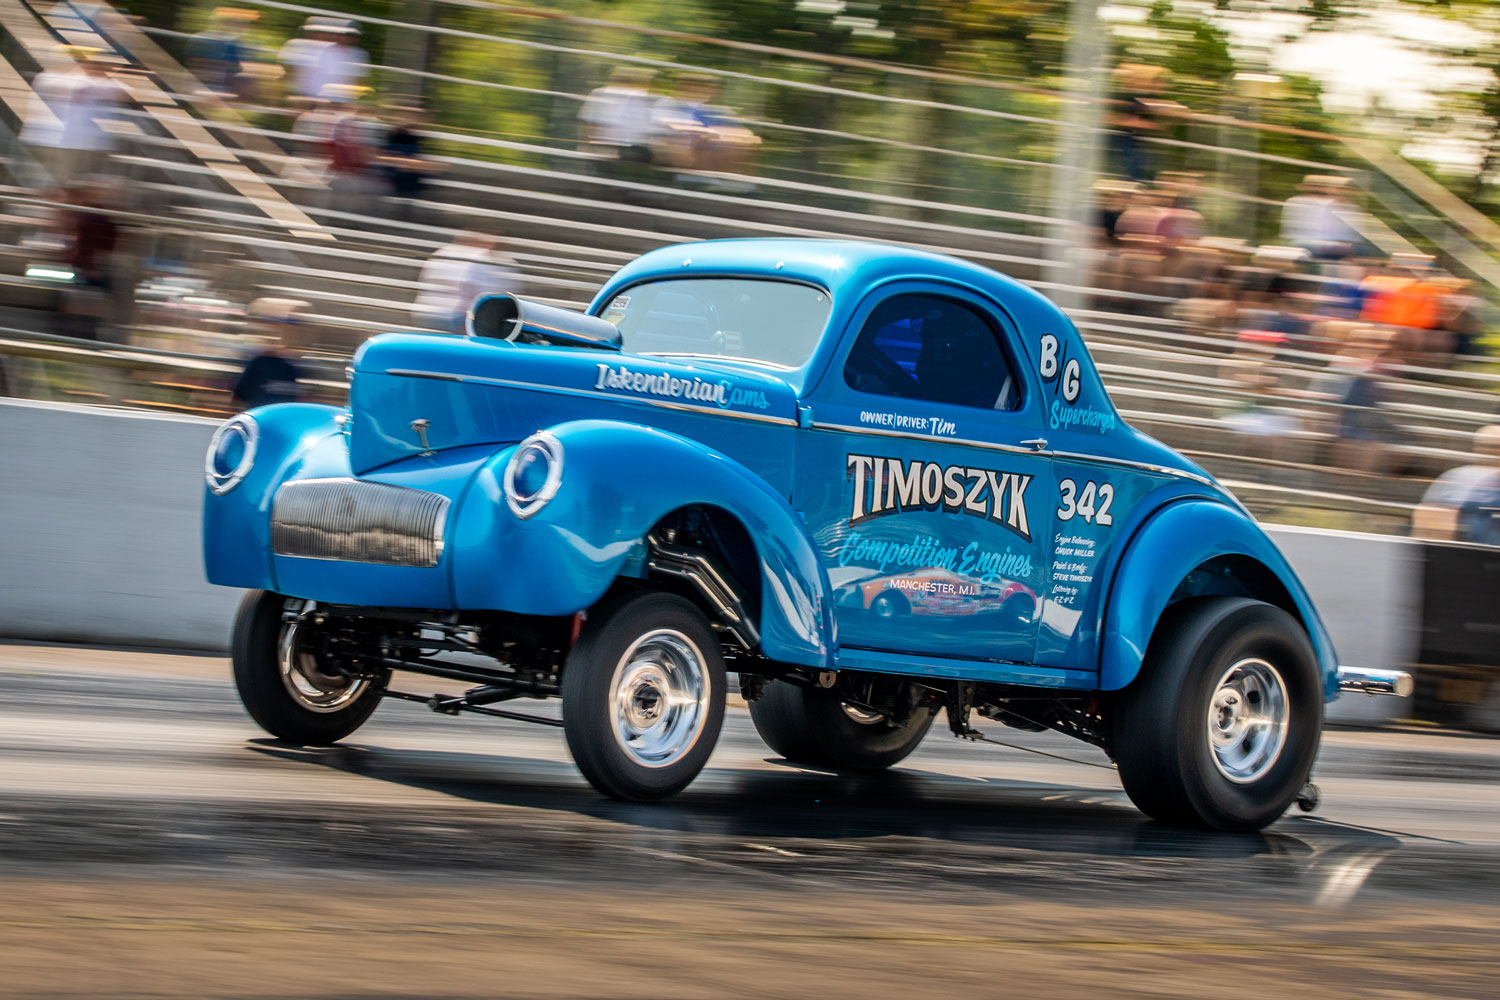 Tim Timoszyk's 1942 Willys Drag Car